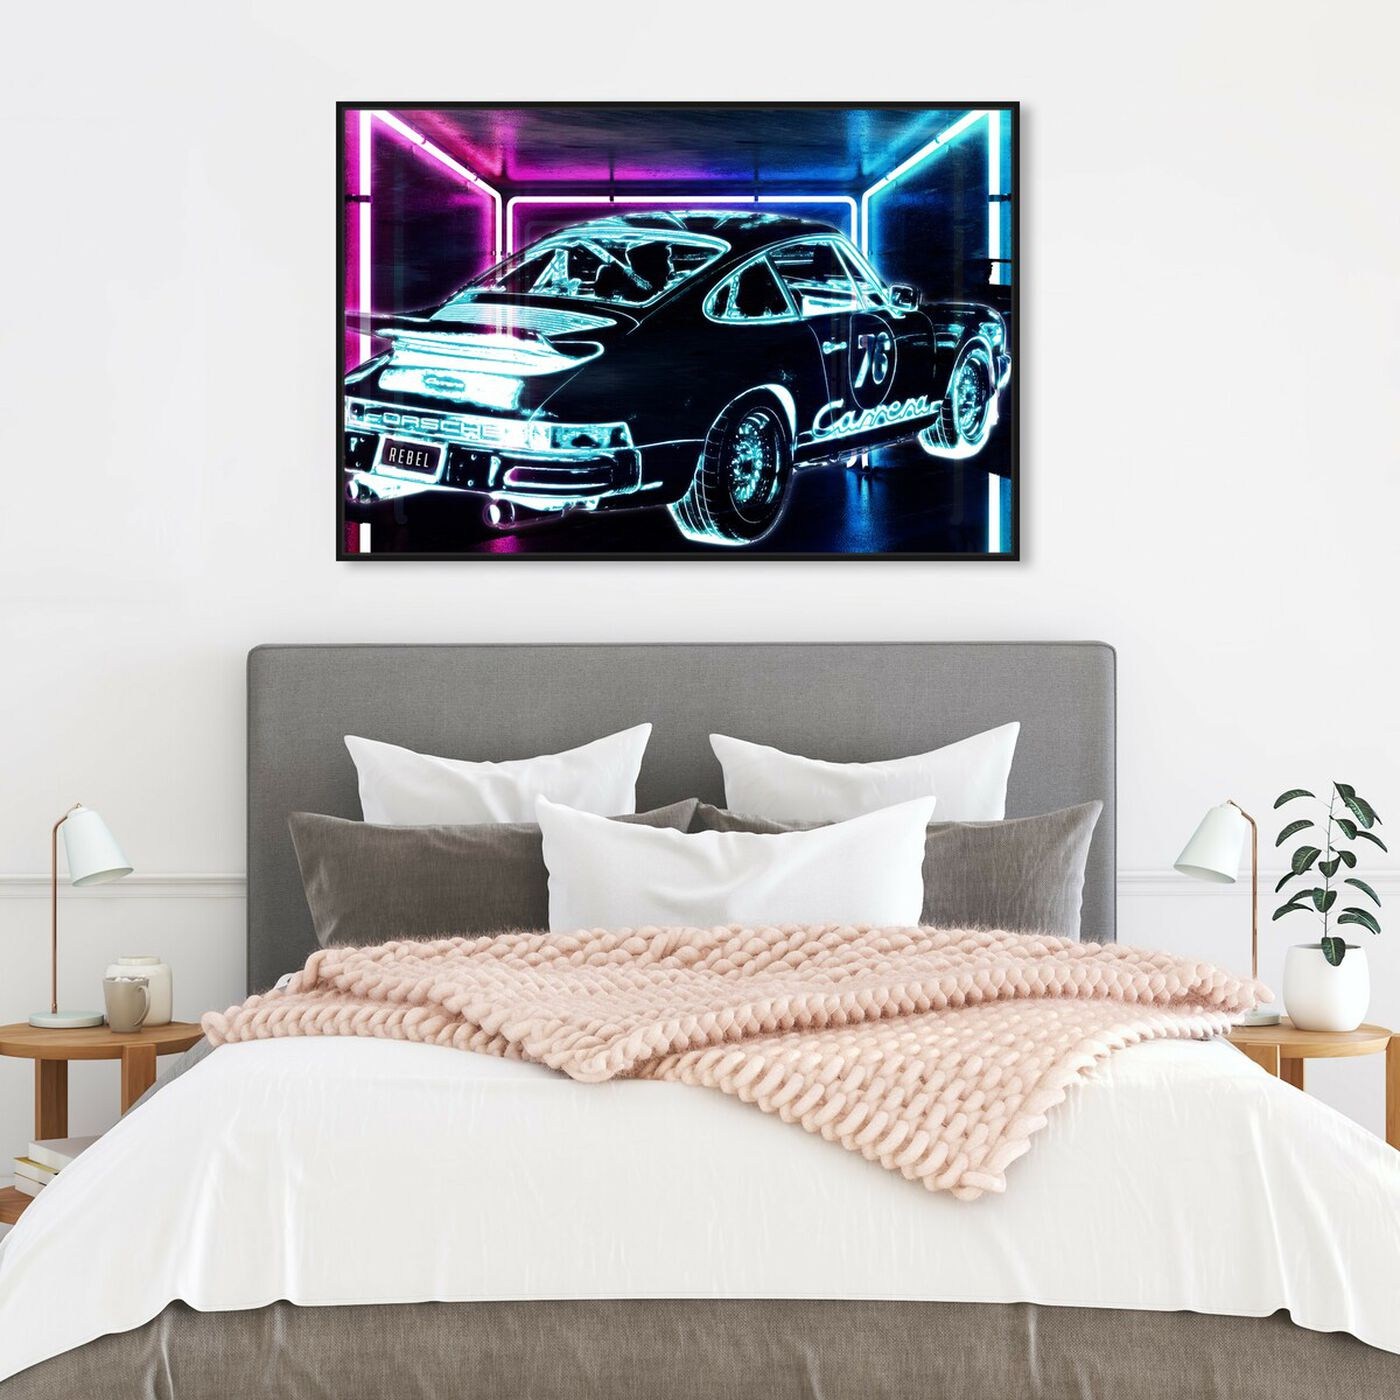 Hanging view of CyberCar art.